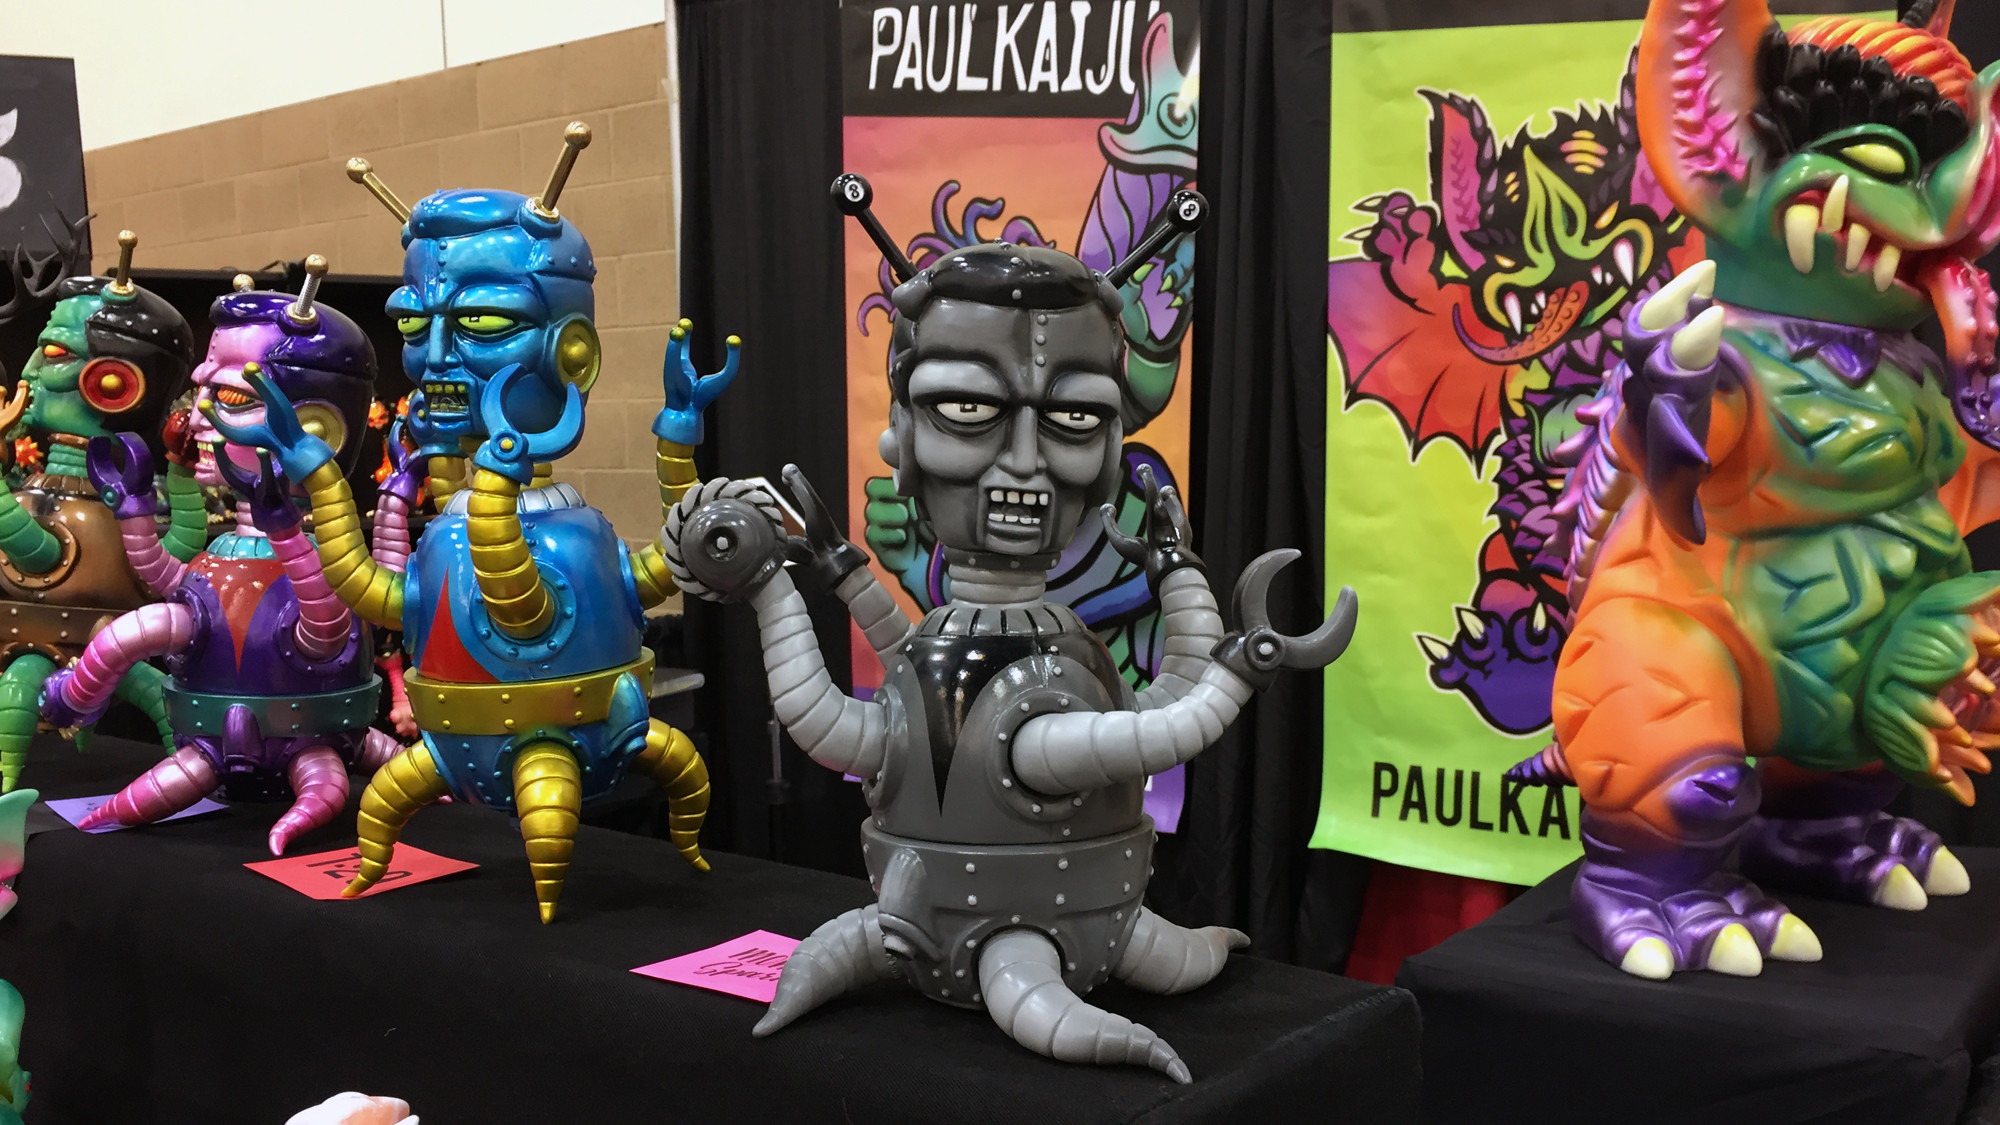 Paulkaiju @ DesignerCon - Exhibition Overview